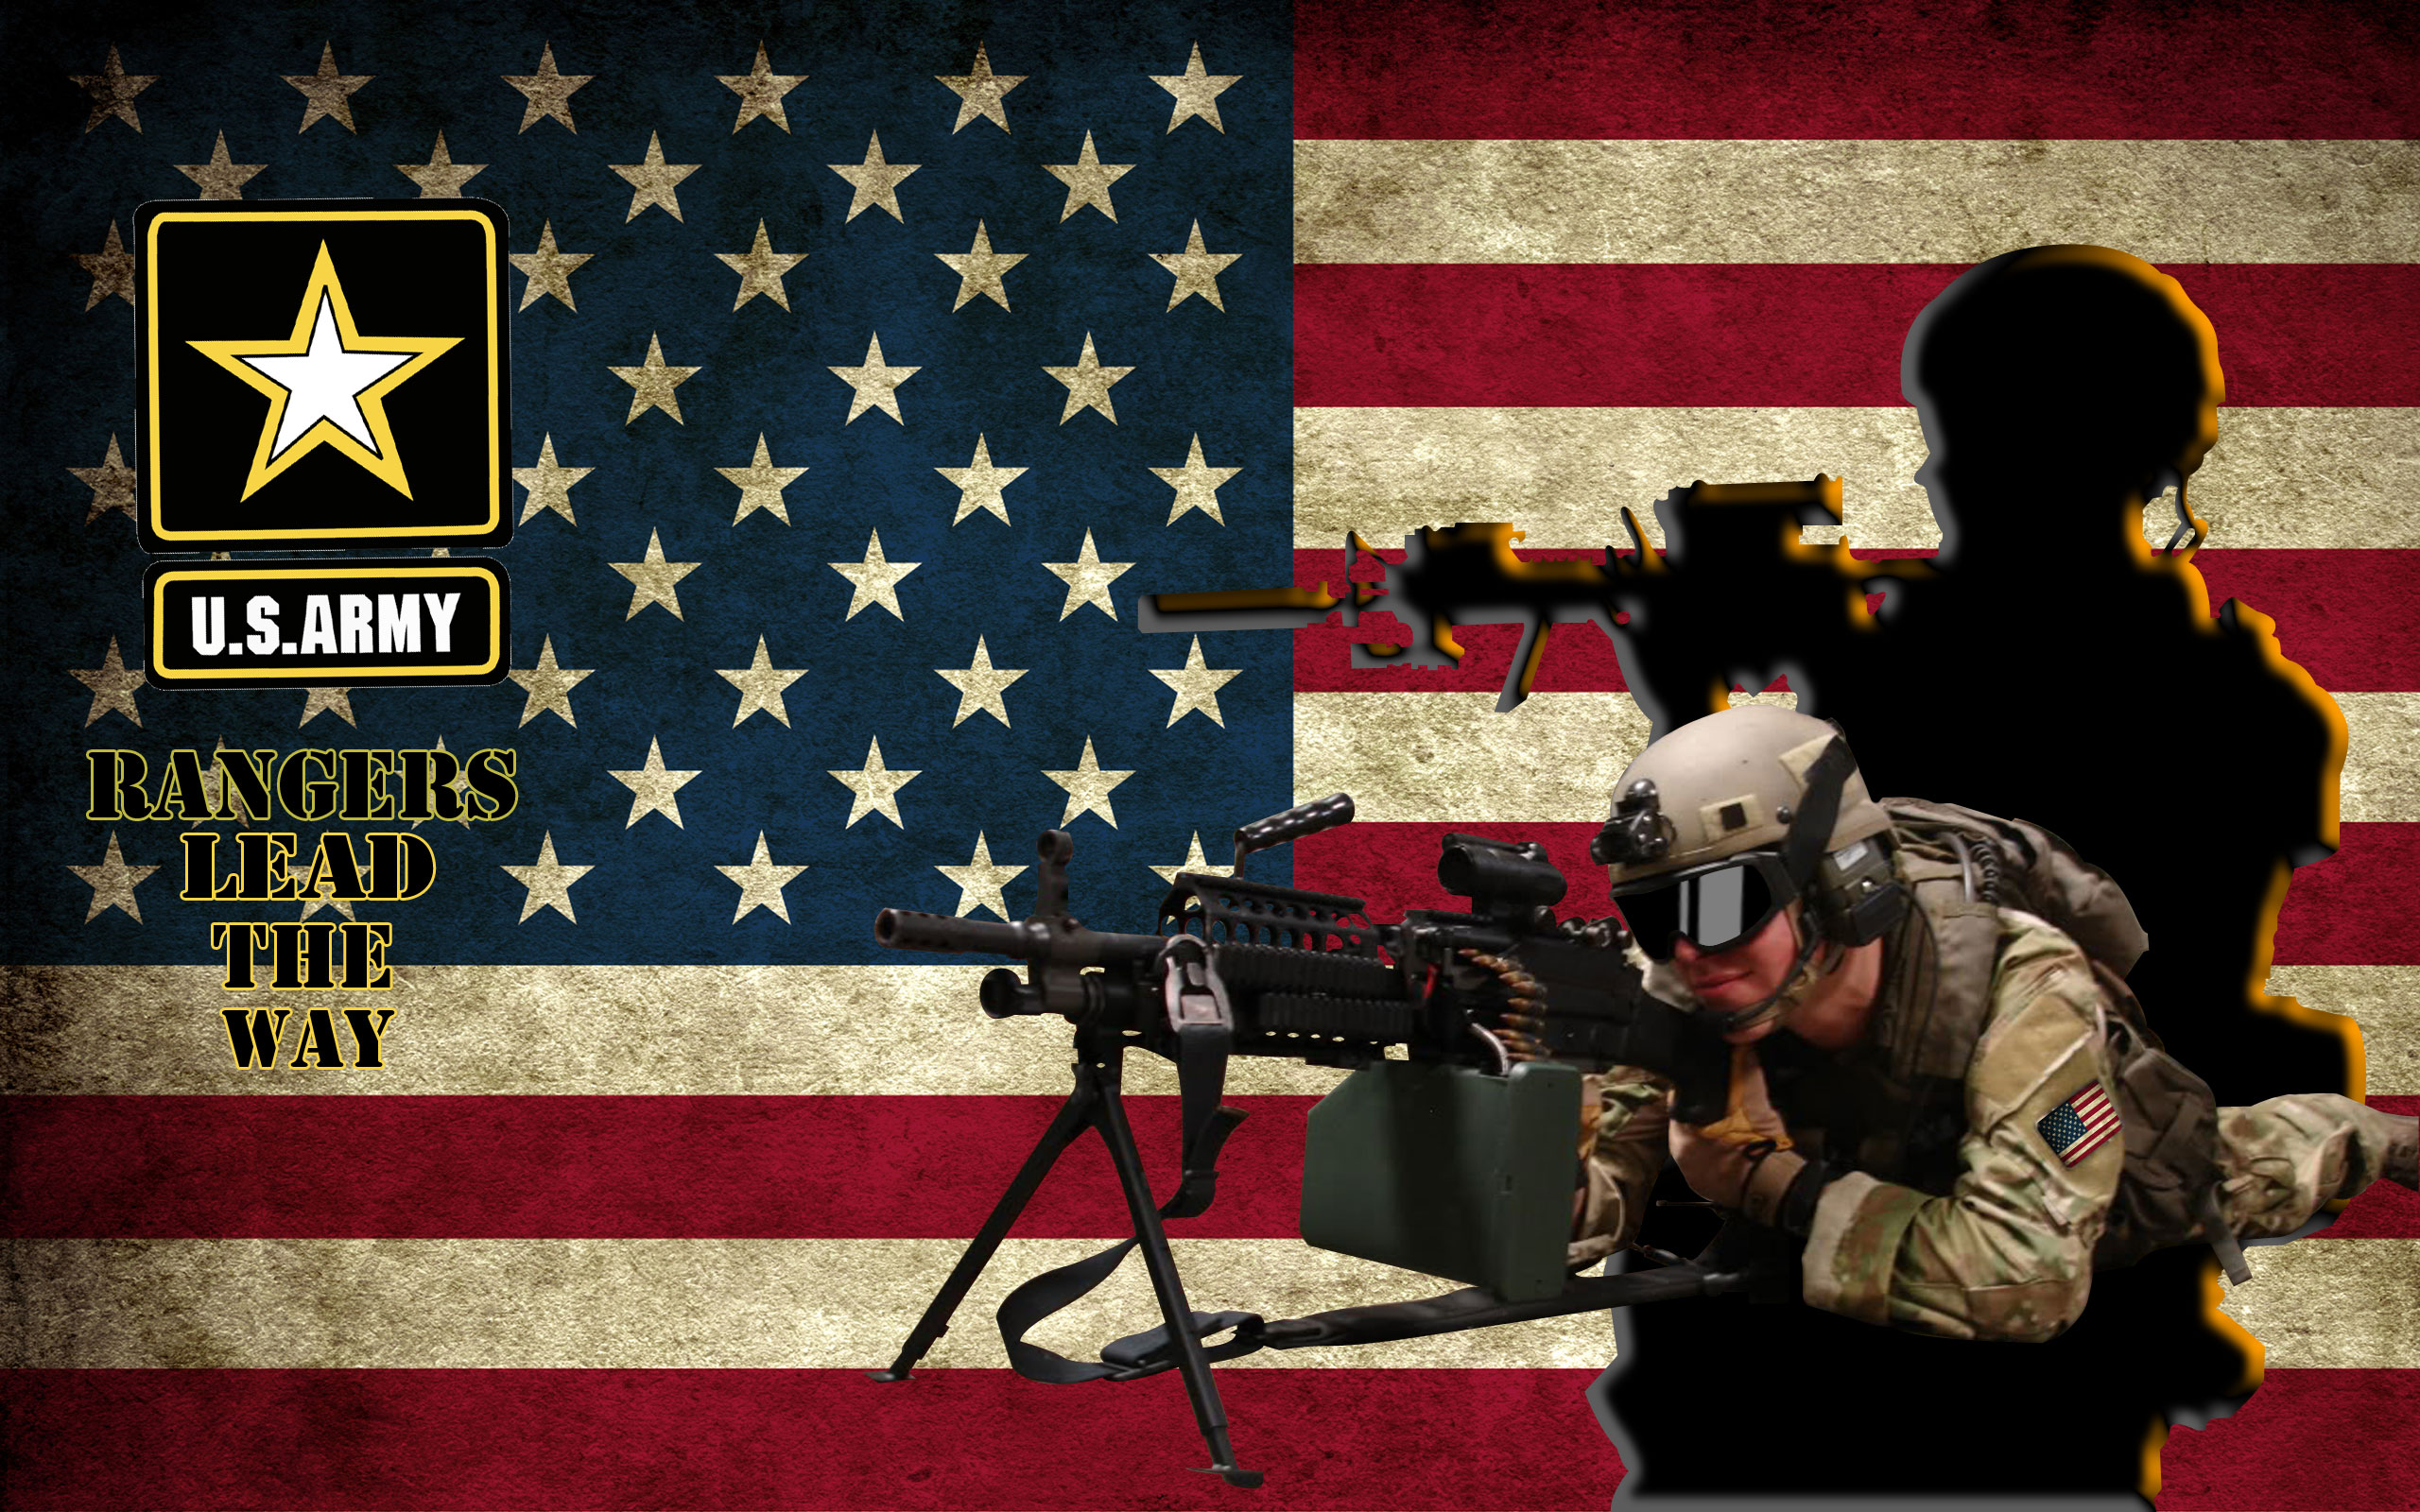 Army Rangers Wallpaper Hd   Viewing Gallery 2560x1600